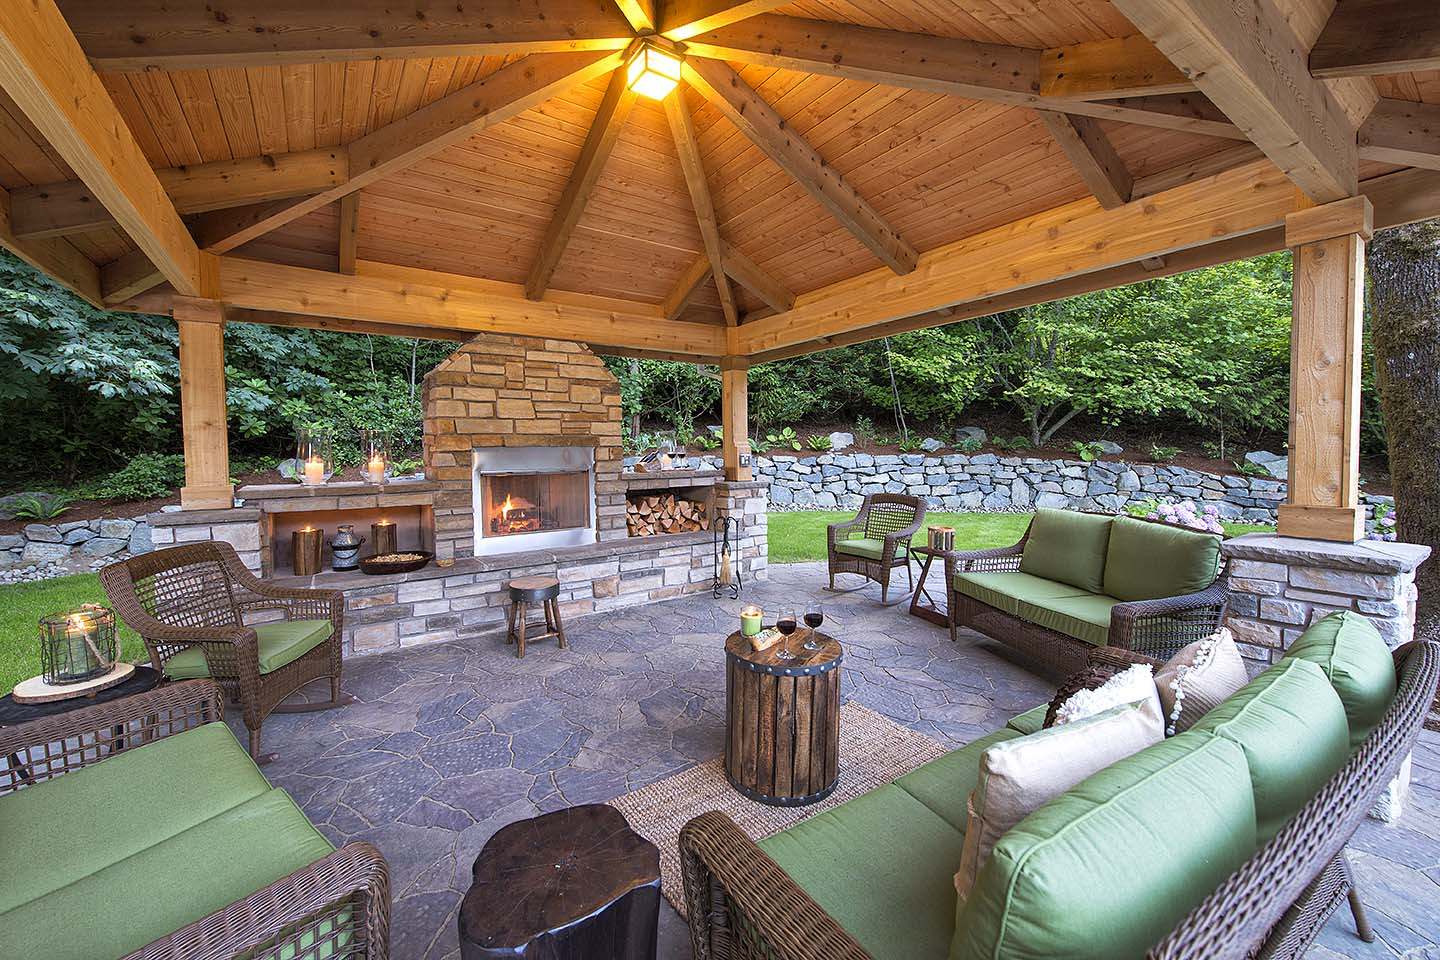 Grand outdoor living room with house matching comfort